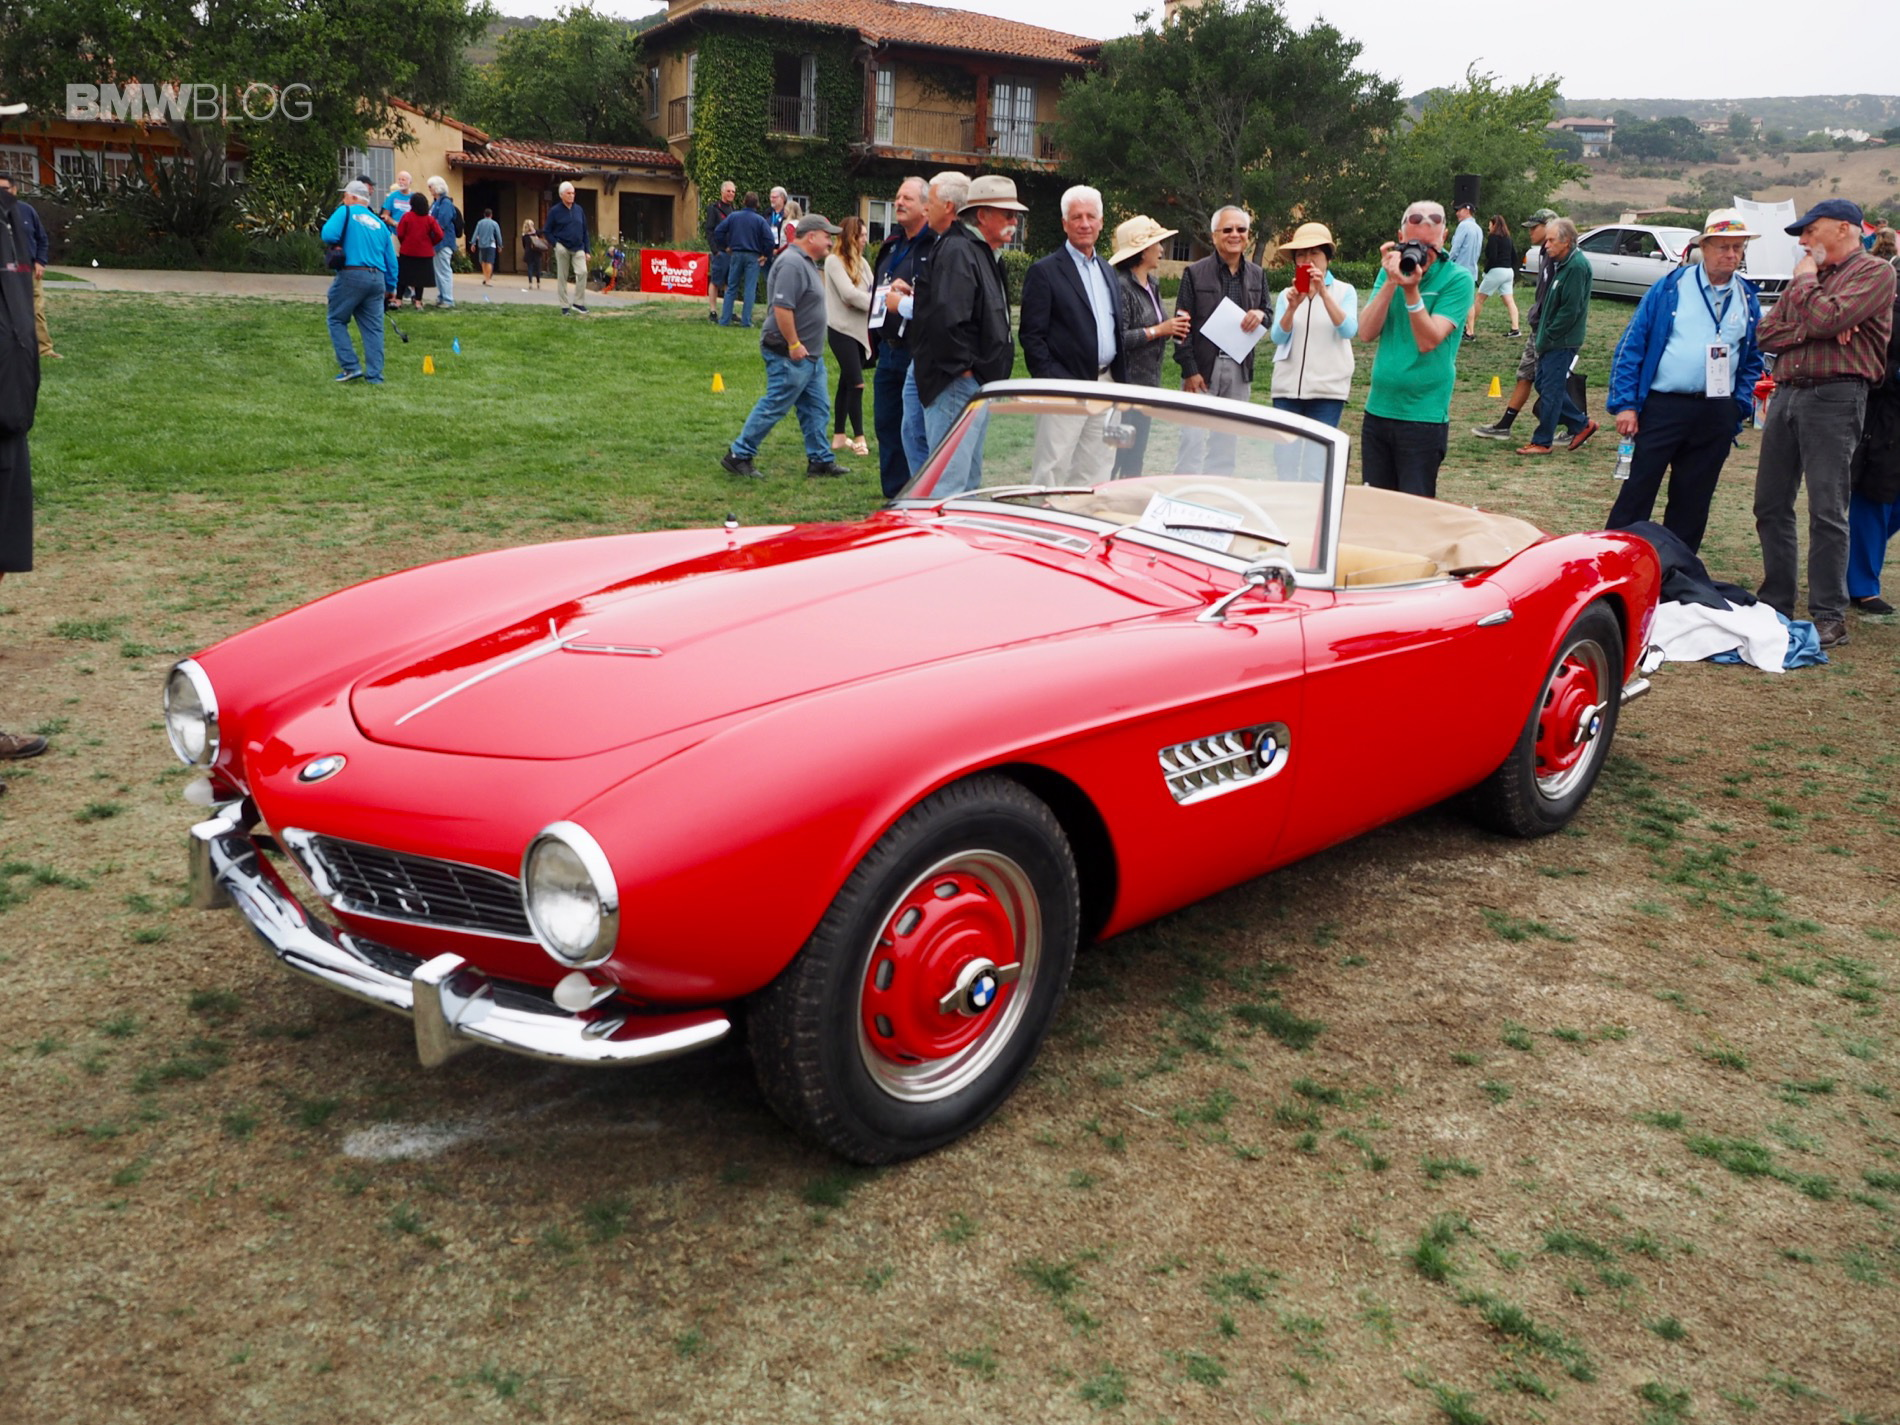 A stunning BMW 507 in red color